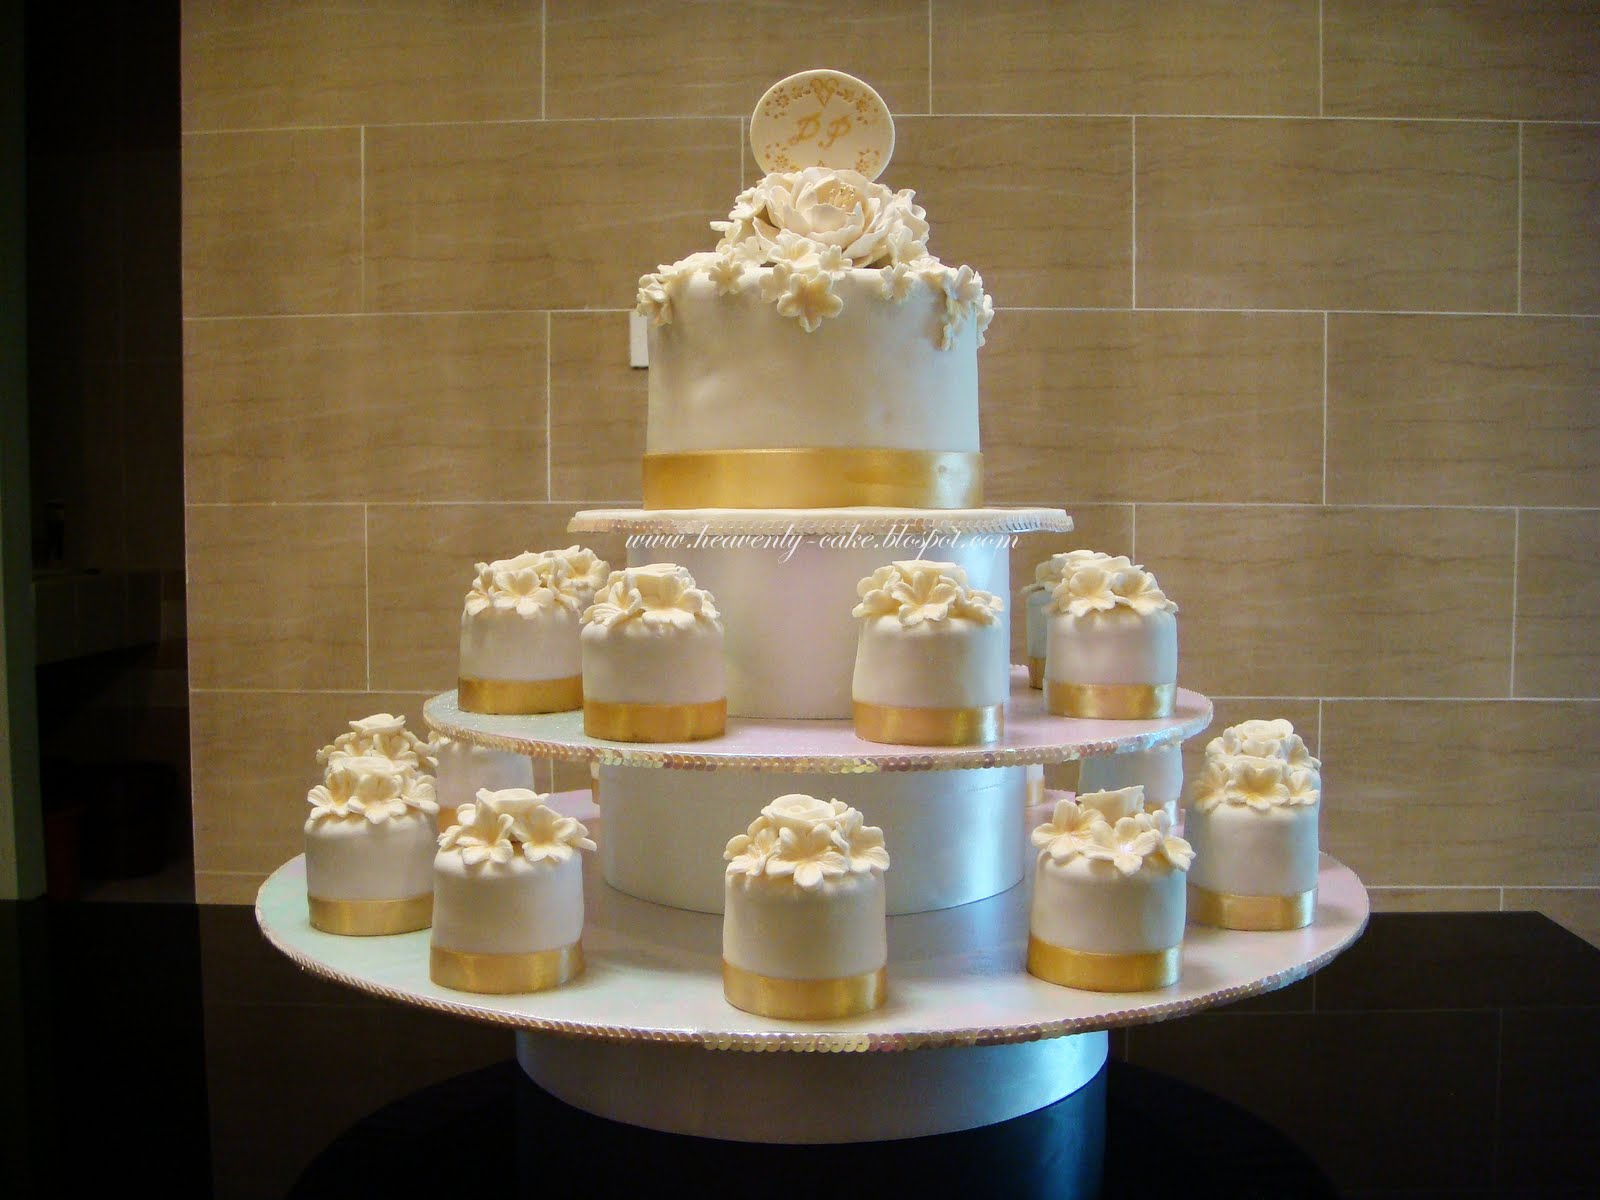 Heavenly Cake: White and Gold Wedding